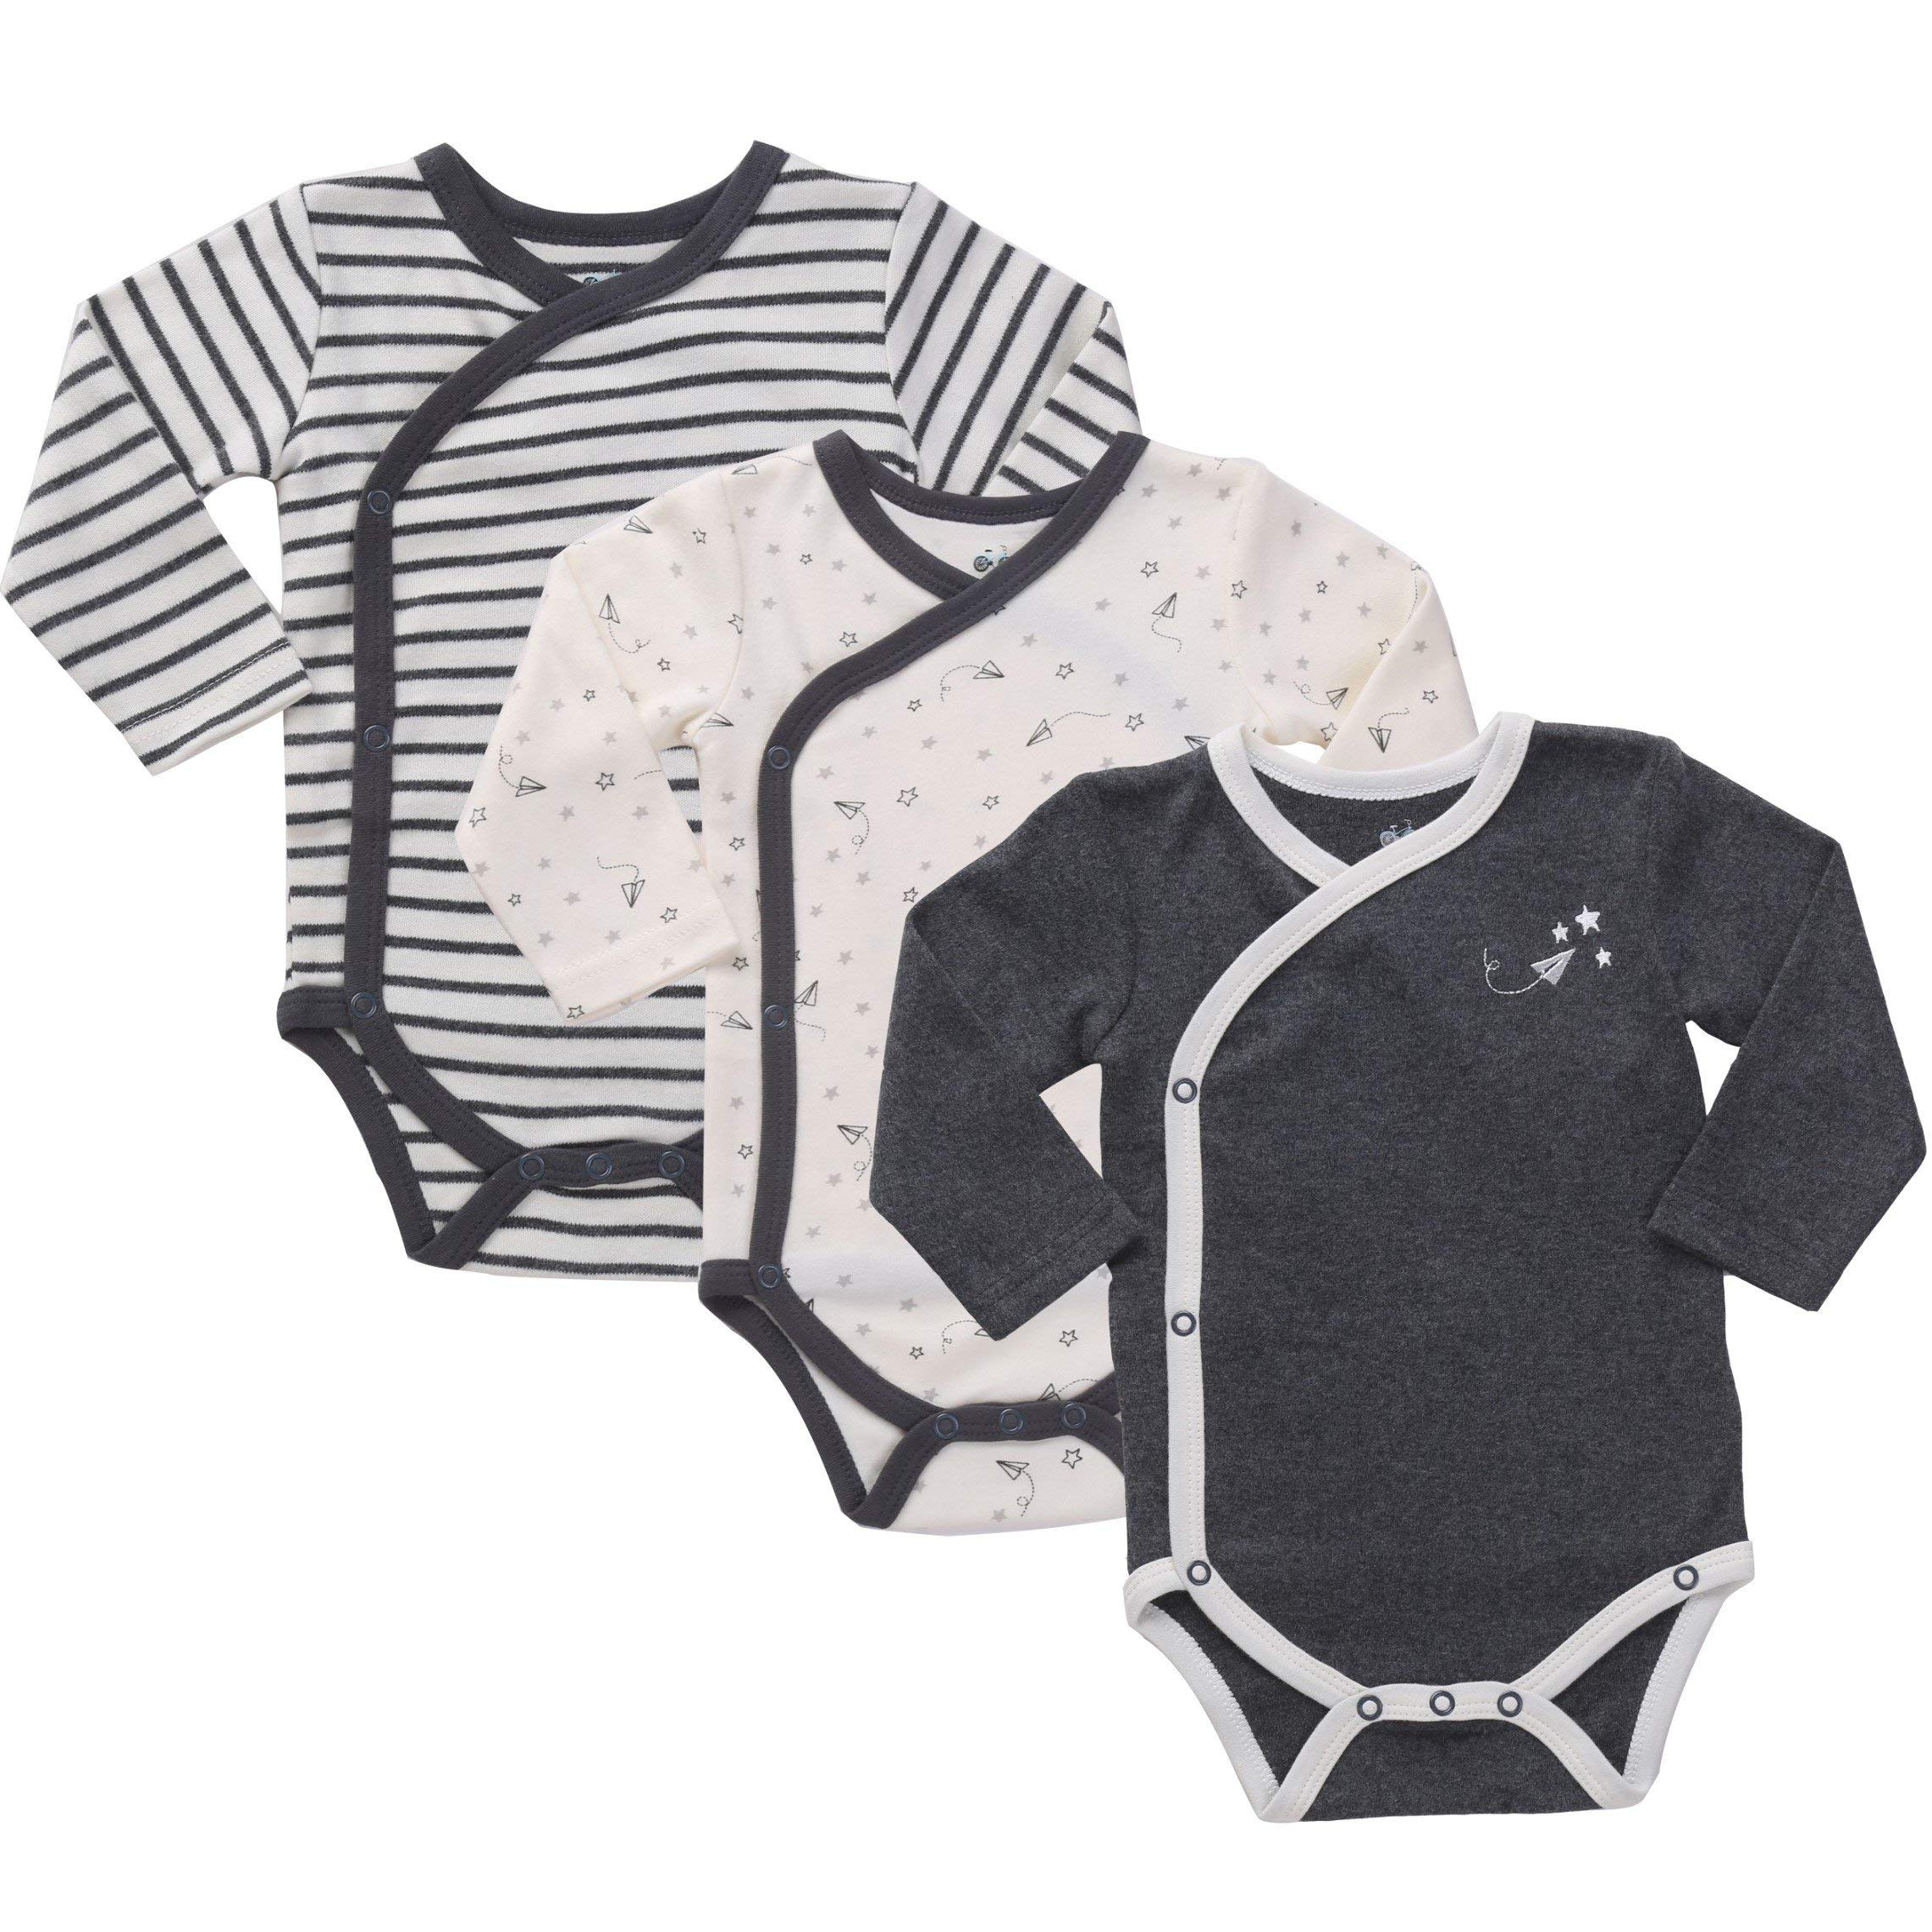 Premie Baby Clothes Patterns Sewing Patterns For Baby